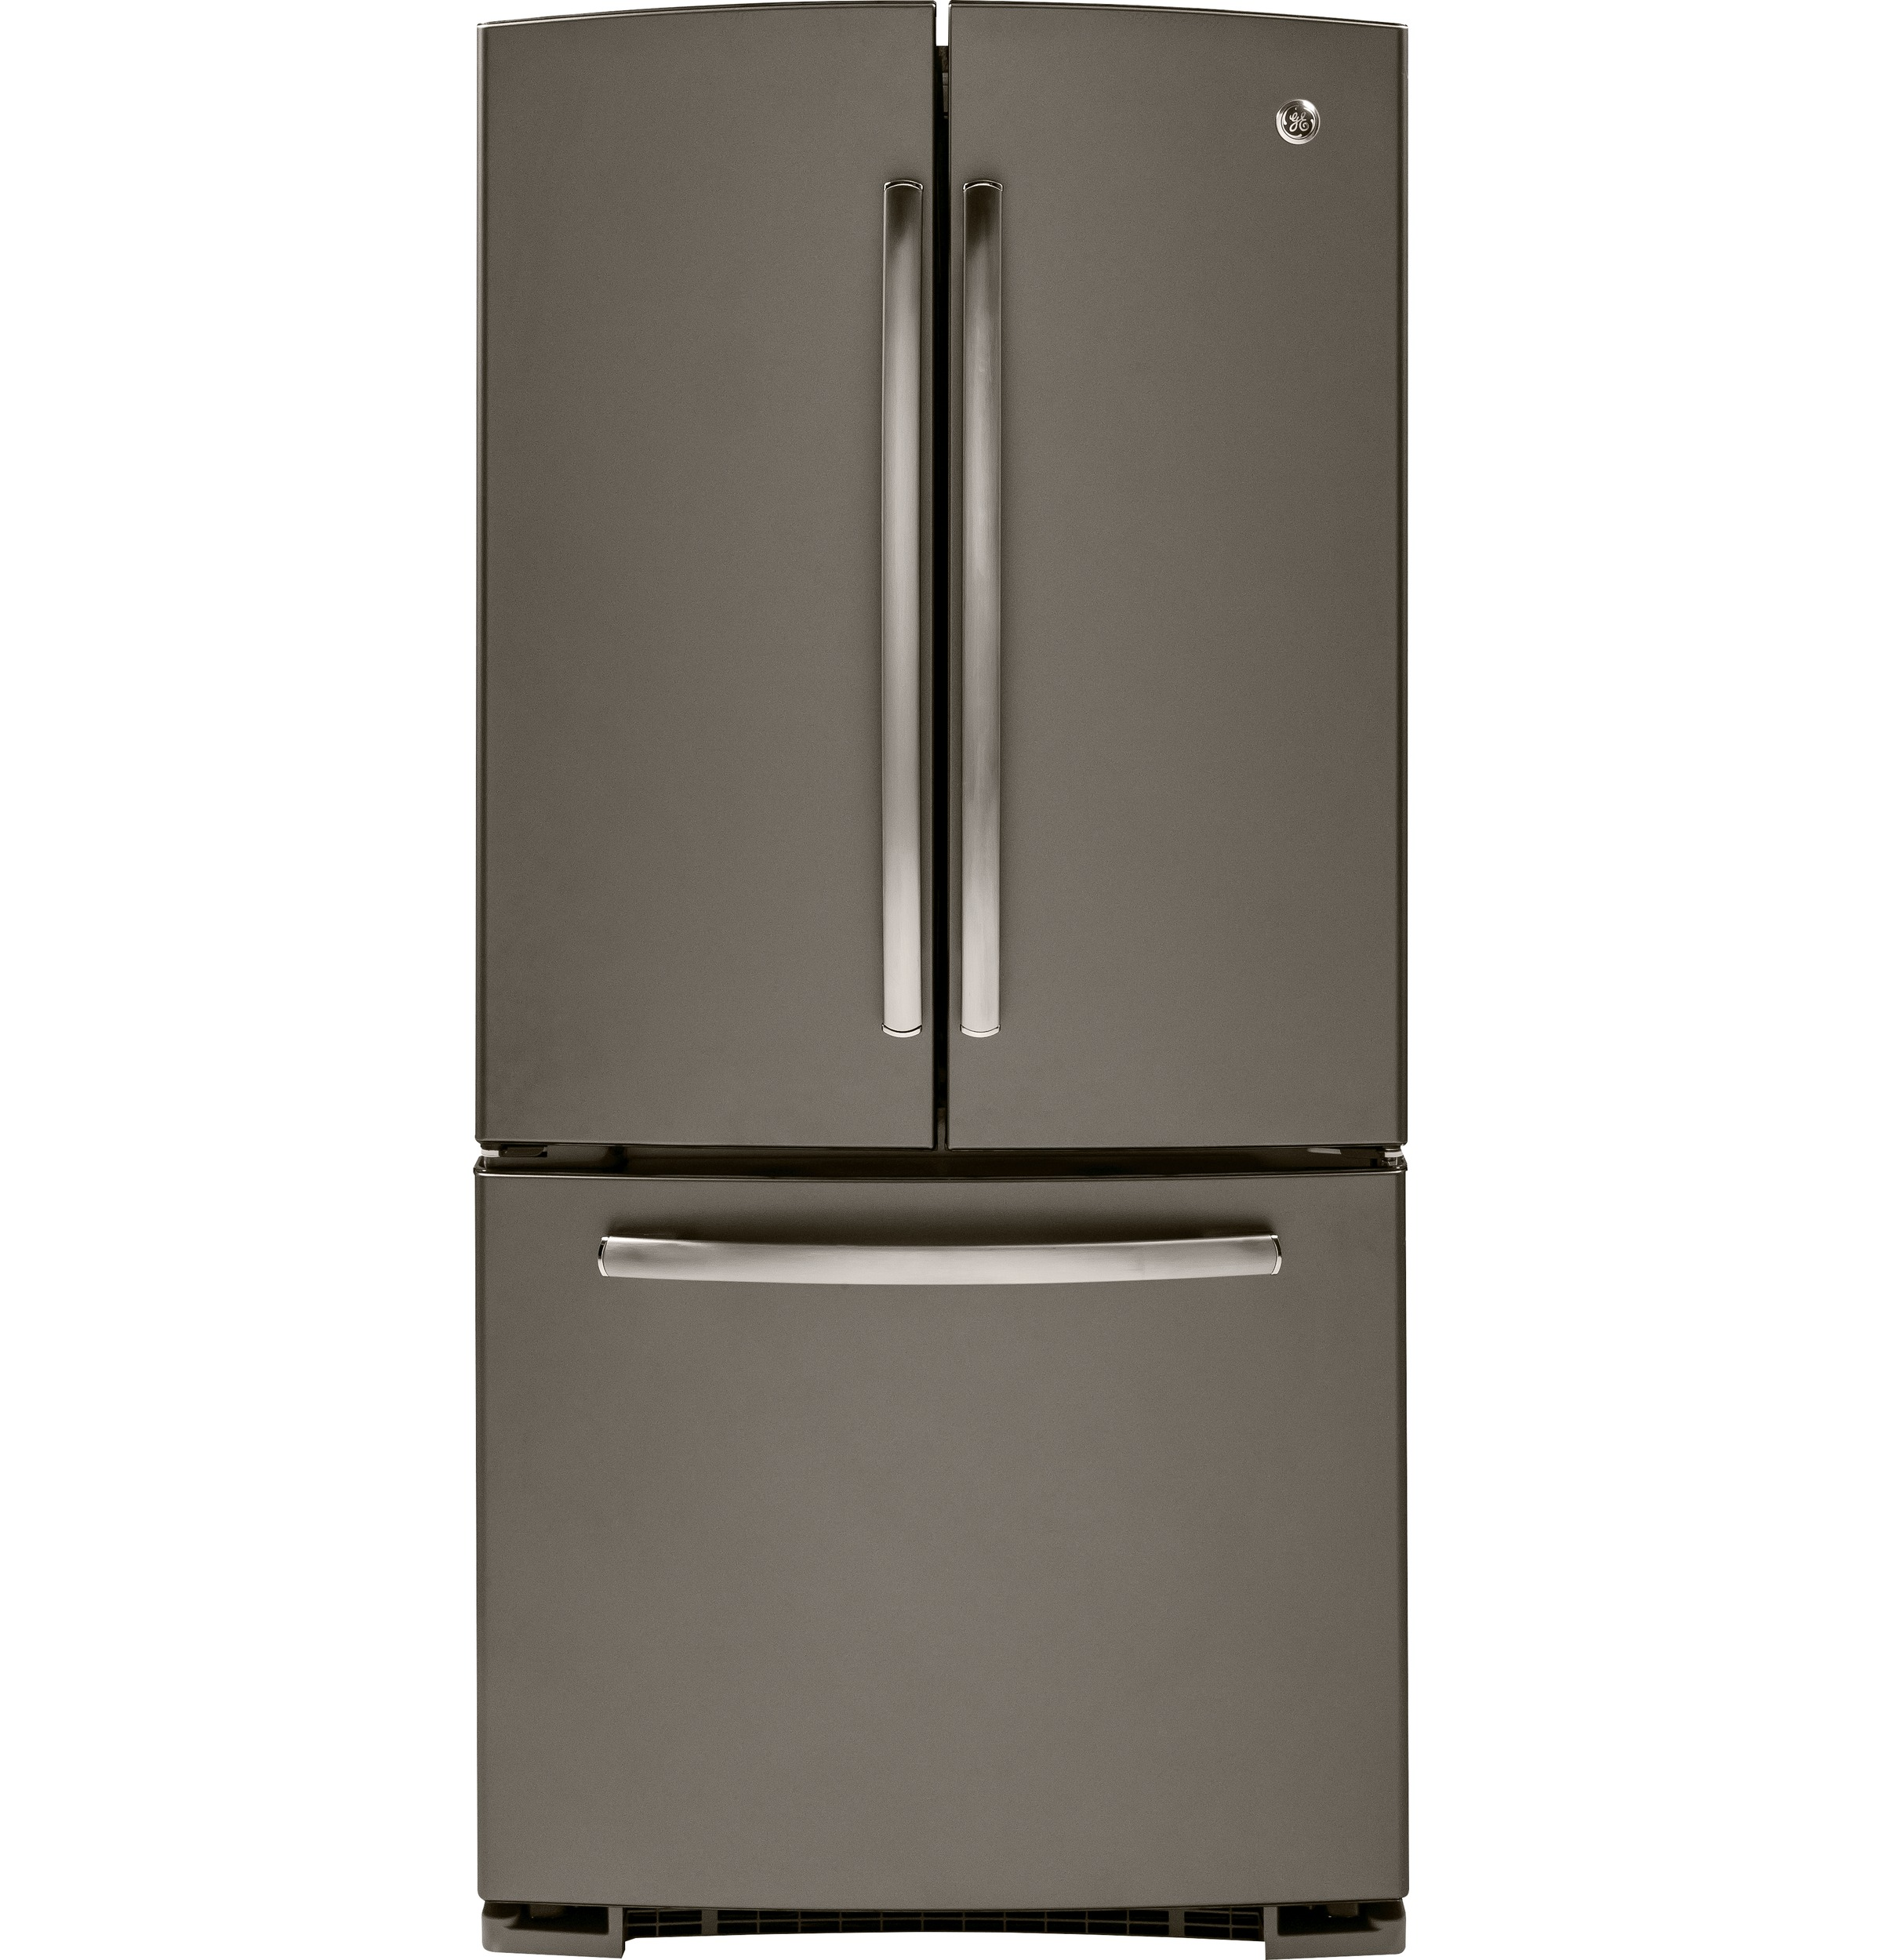 Frosted glass door refrigerator - Product Image